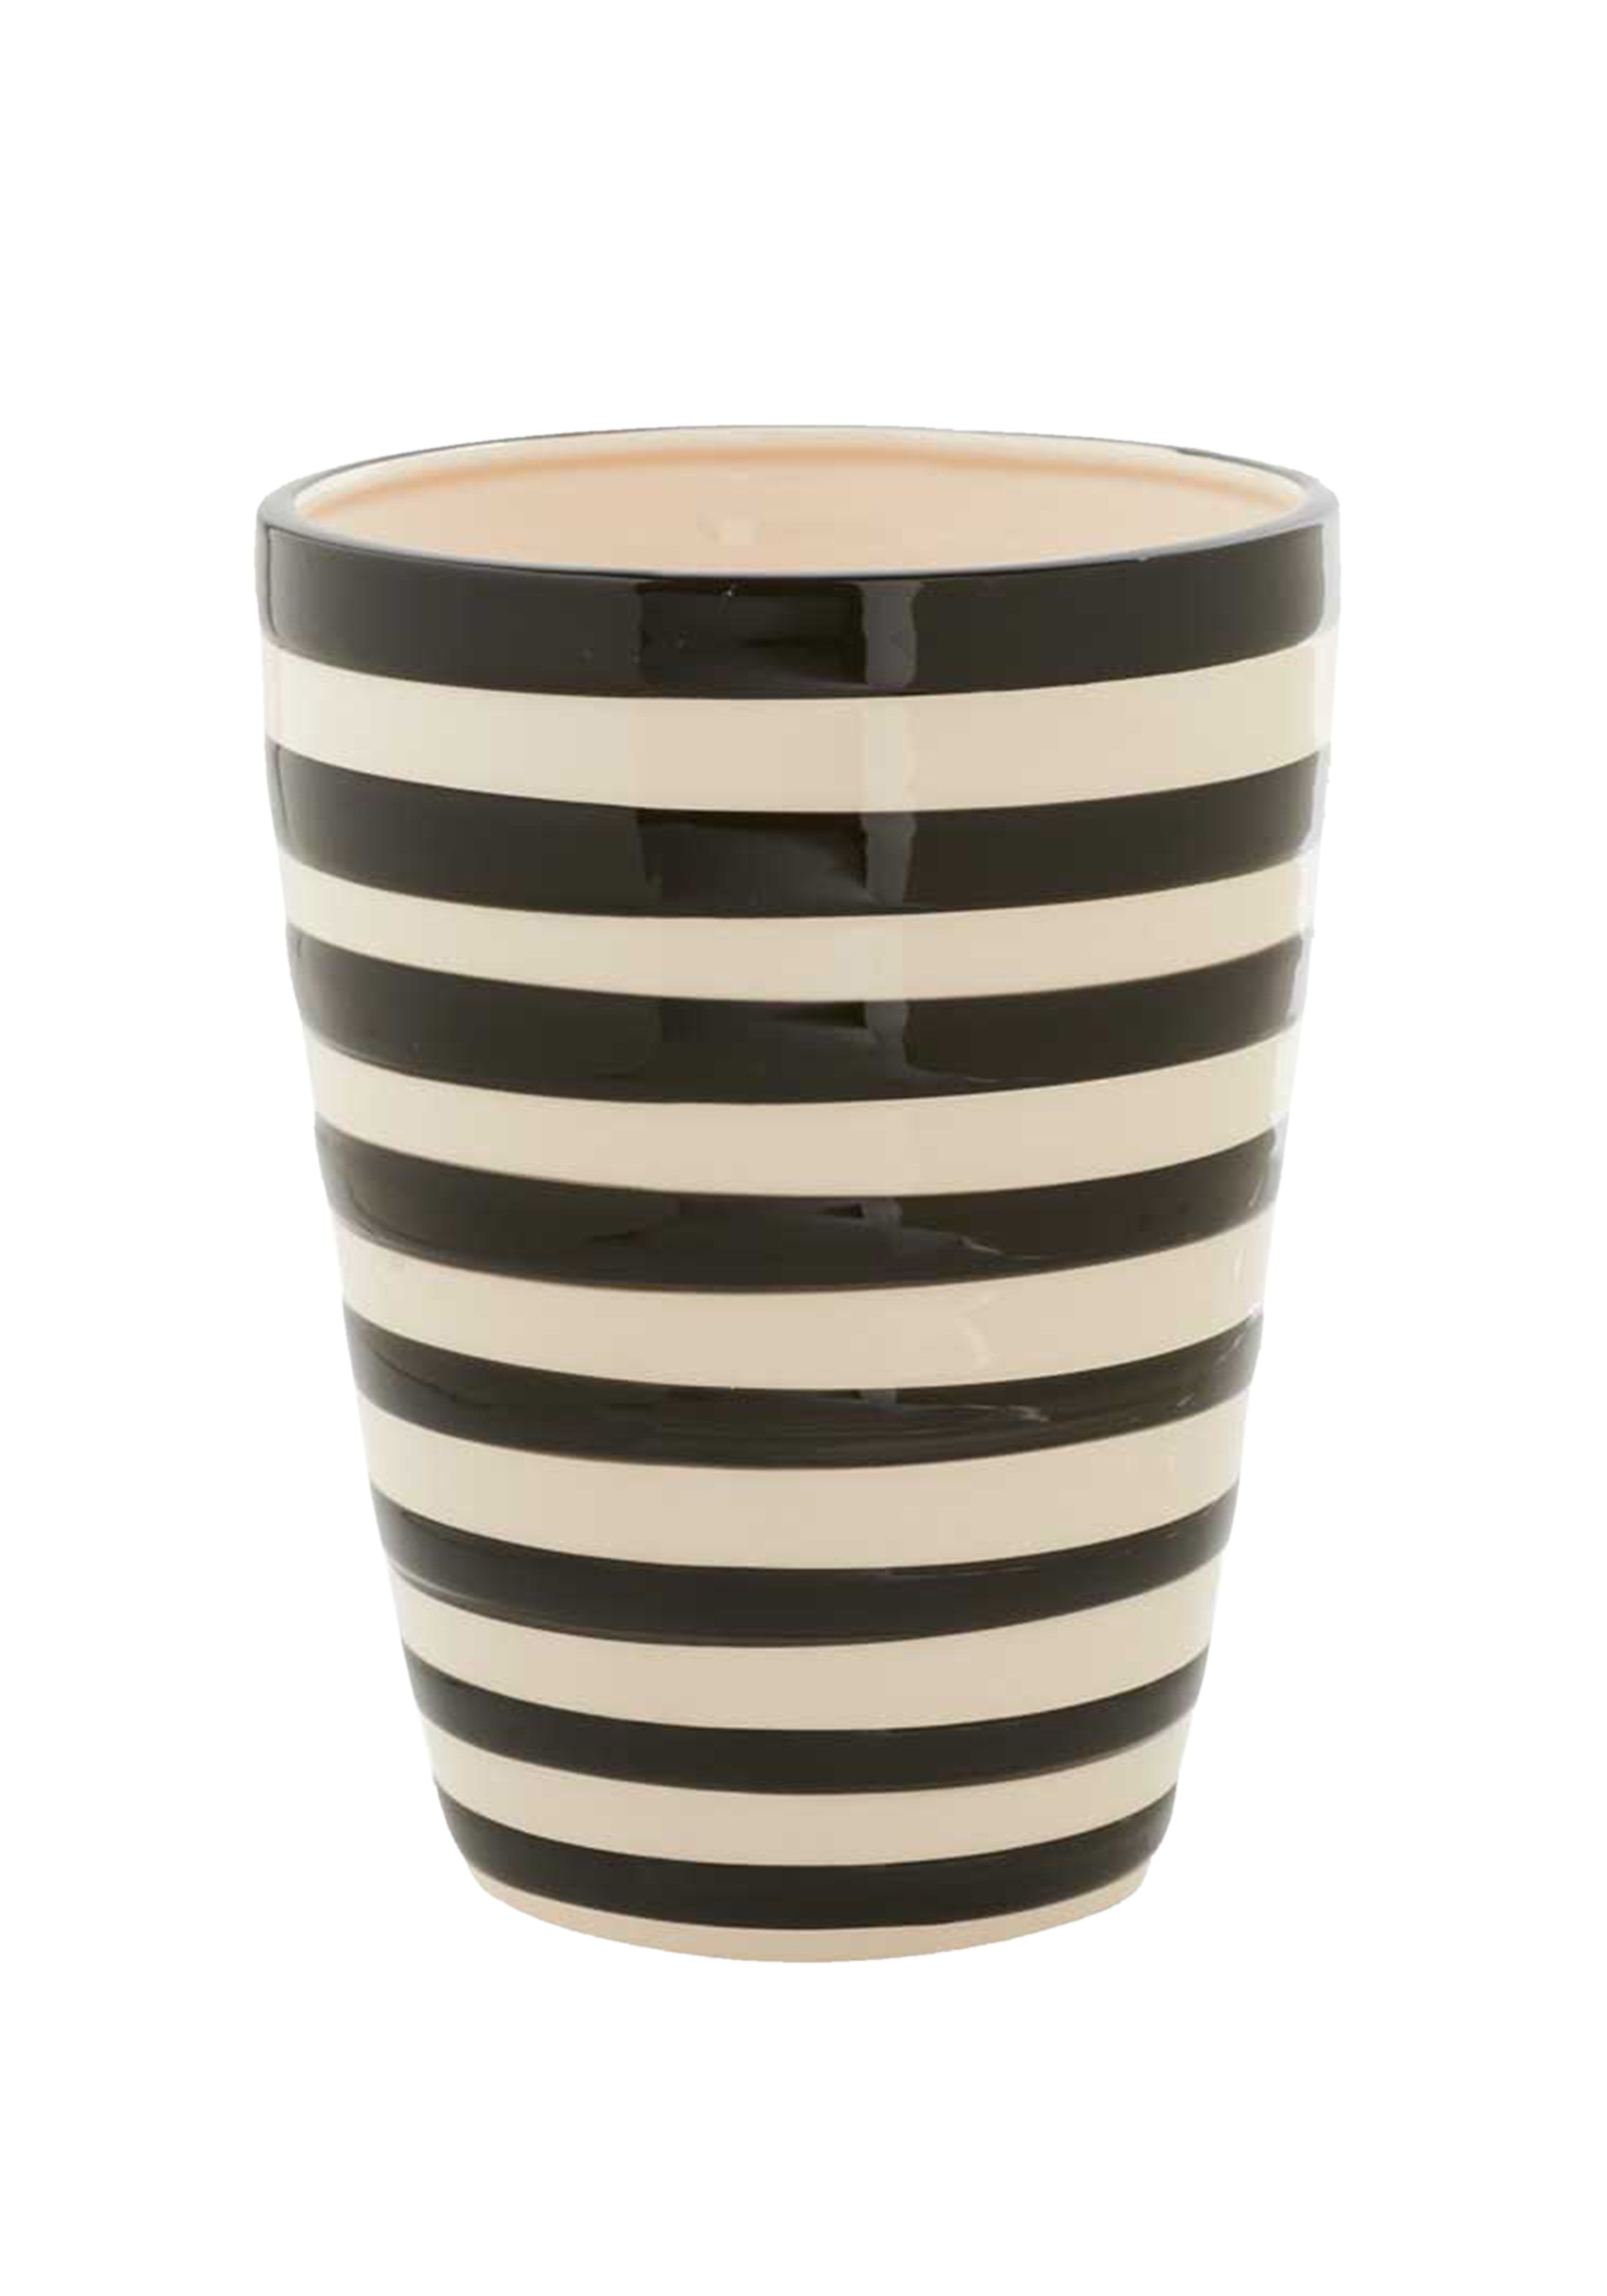 85 Inch Black And White Ceramic Striped Pot Walmart